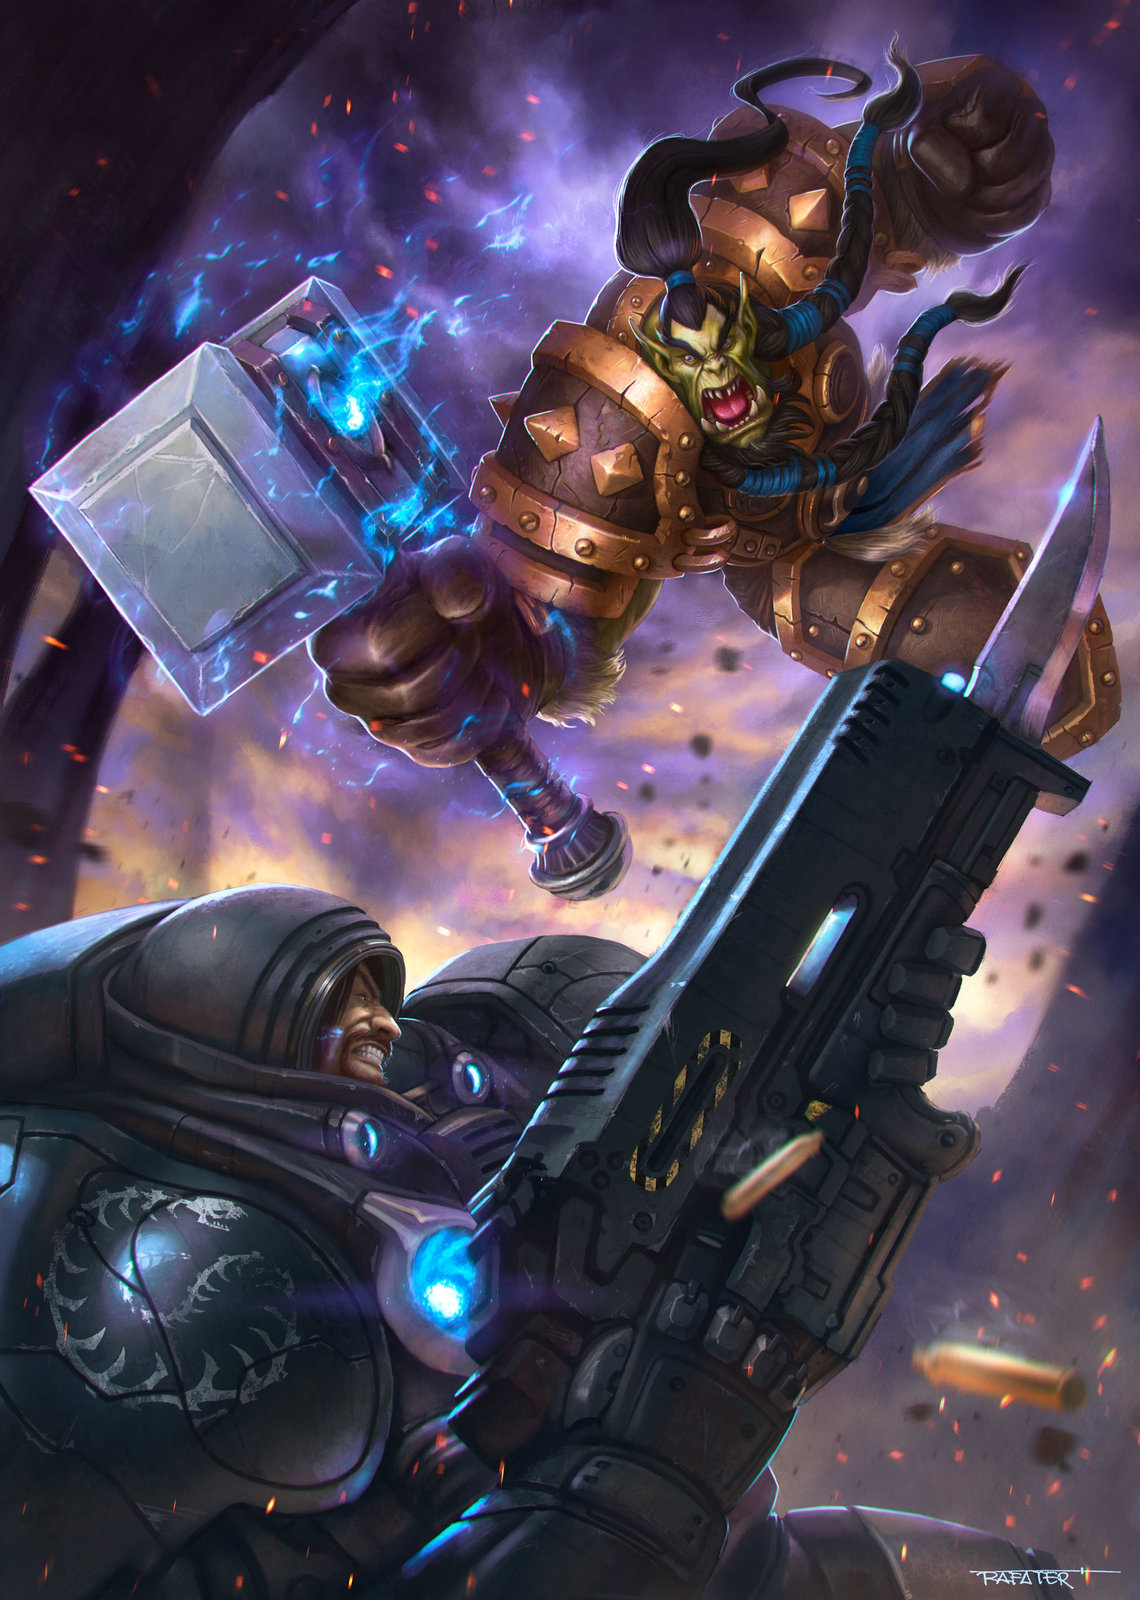 Heroes of the Storm contest - Thrall vs Raynor